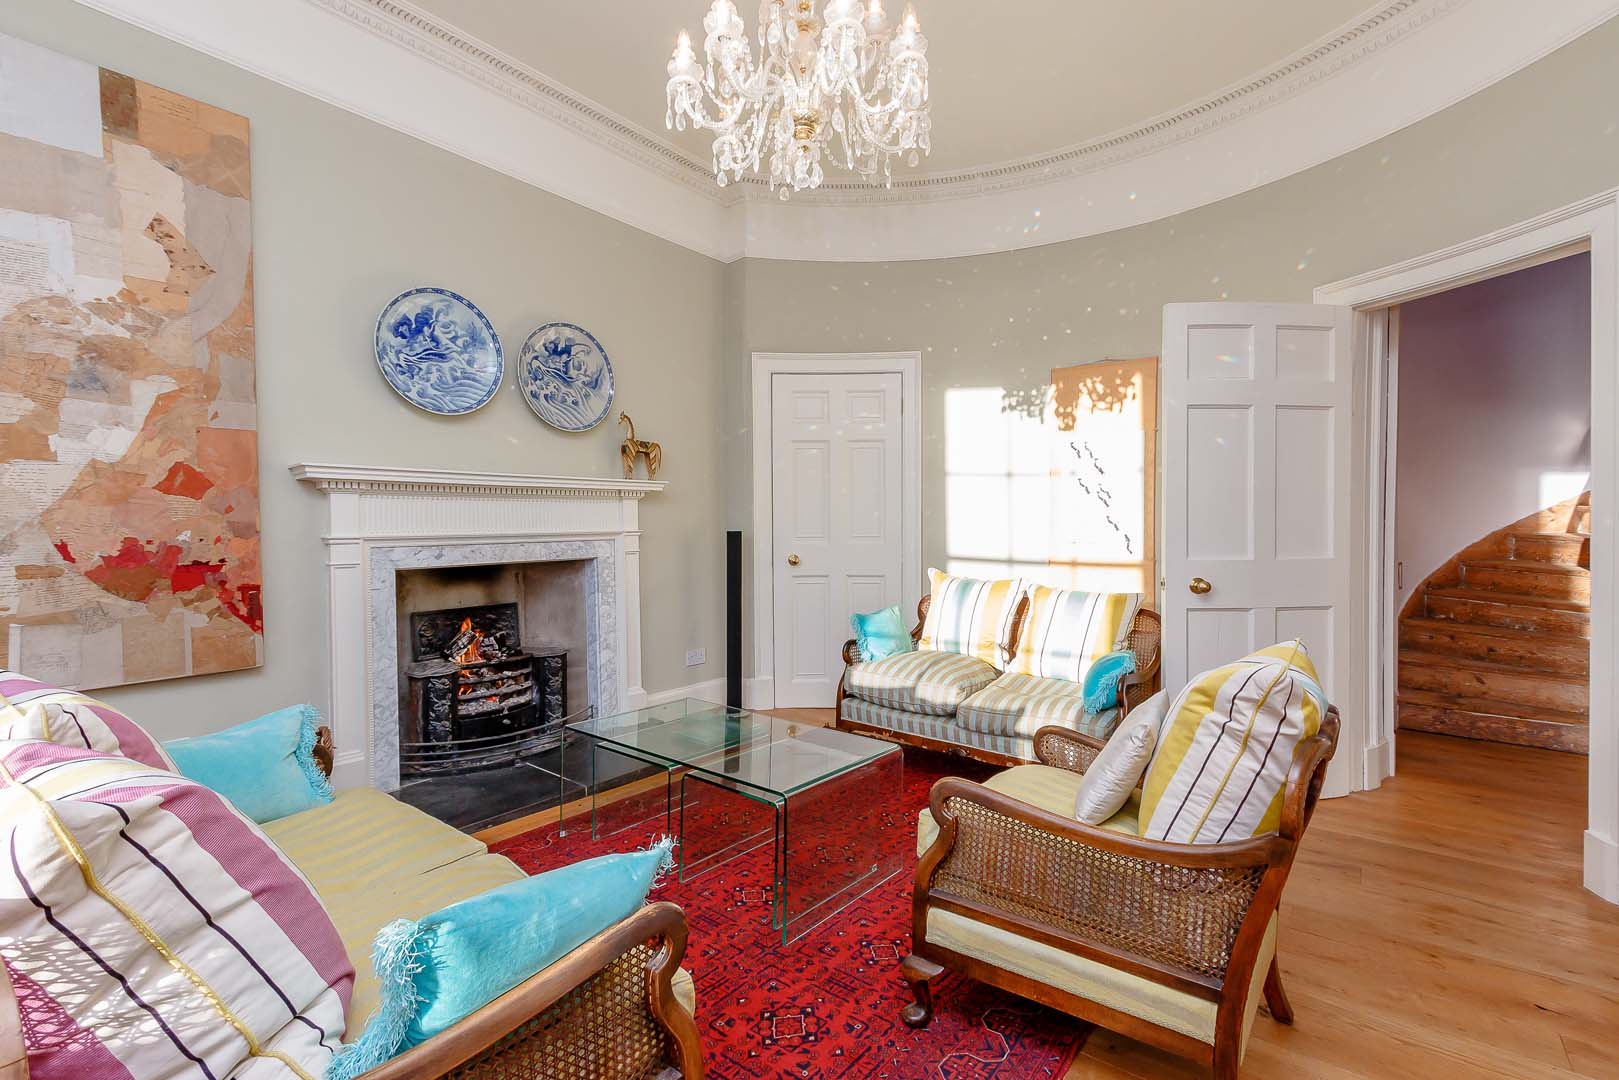 Georgian House image sitting room with fireplace on